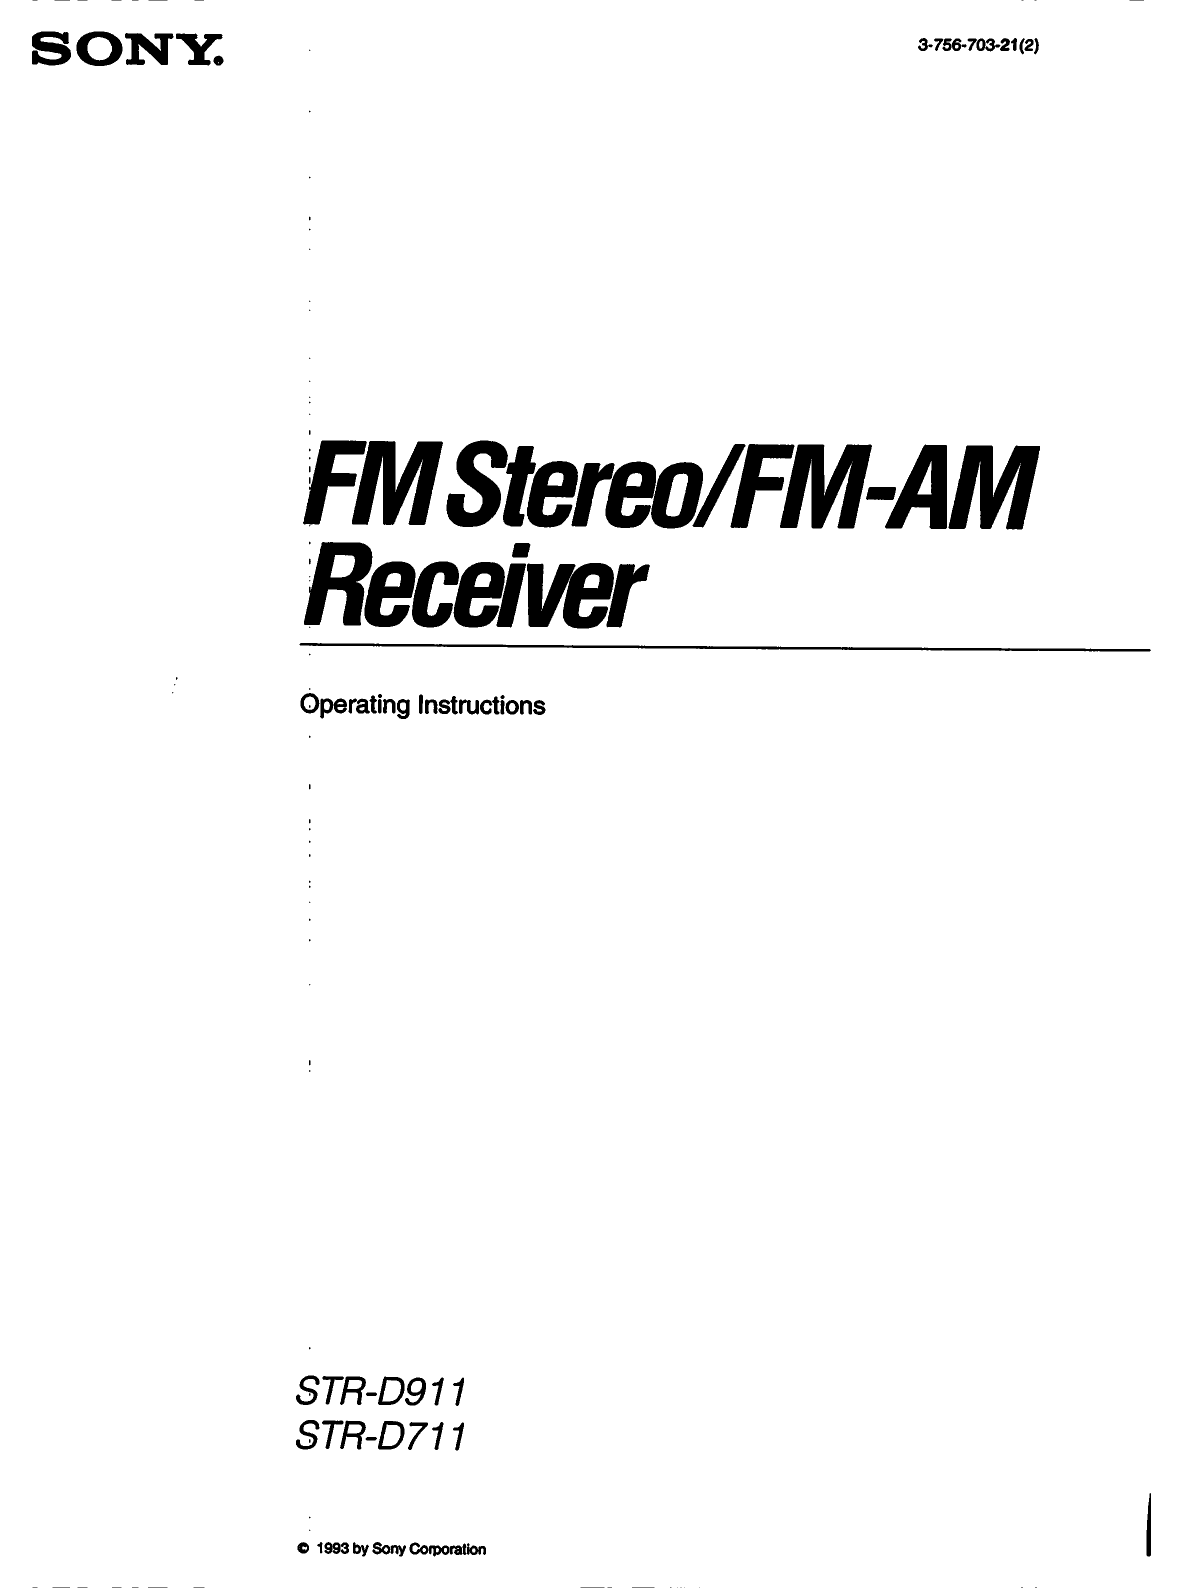 Download free pdf for Sony STR-D911 Receiver manual